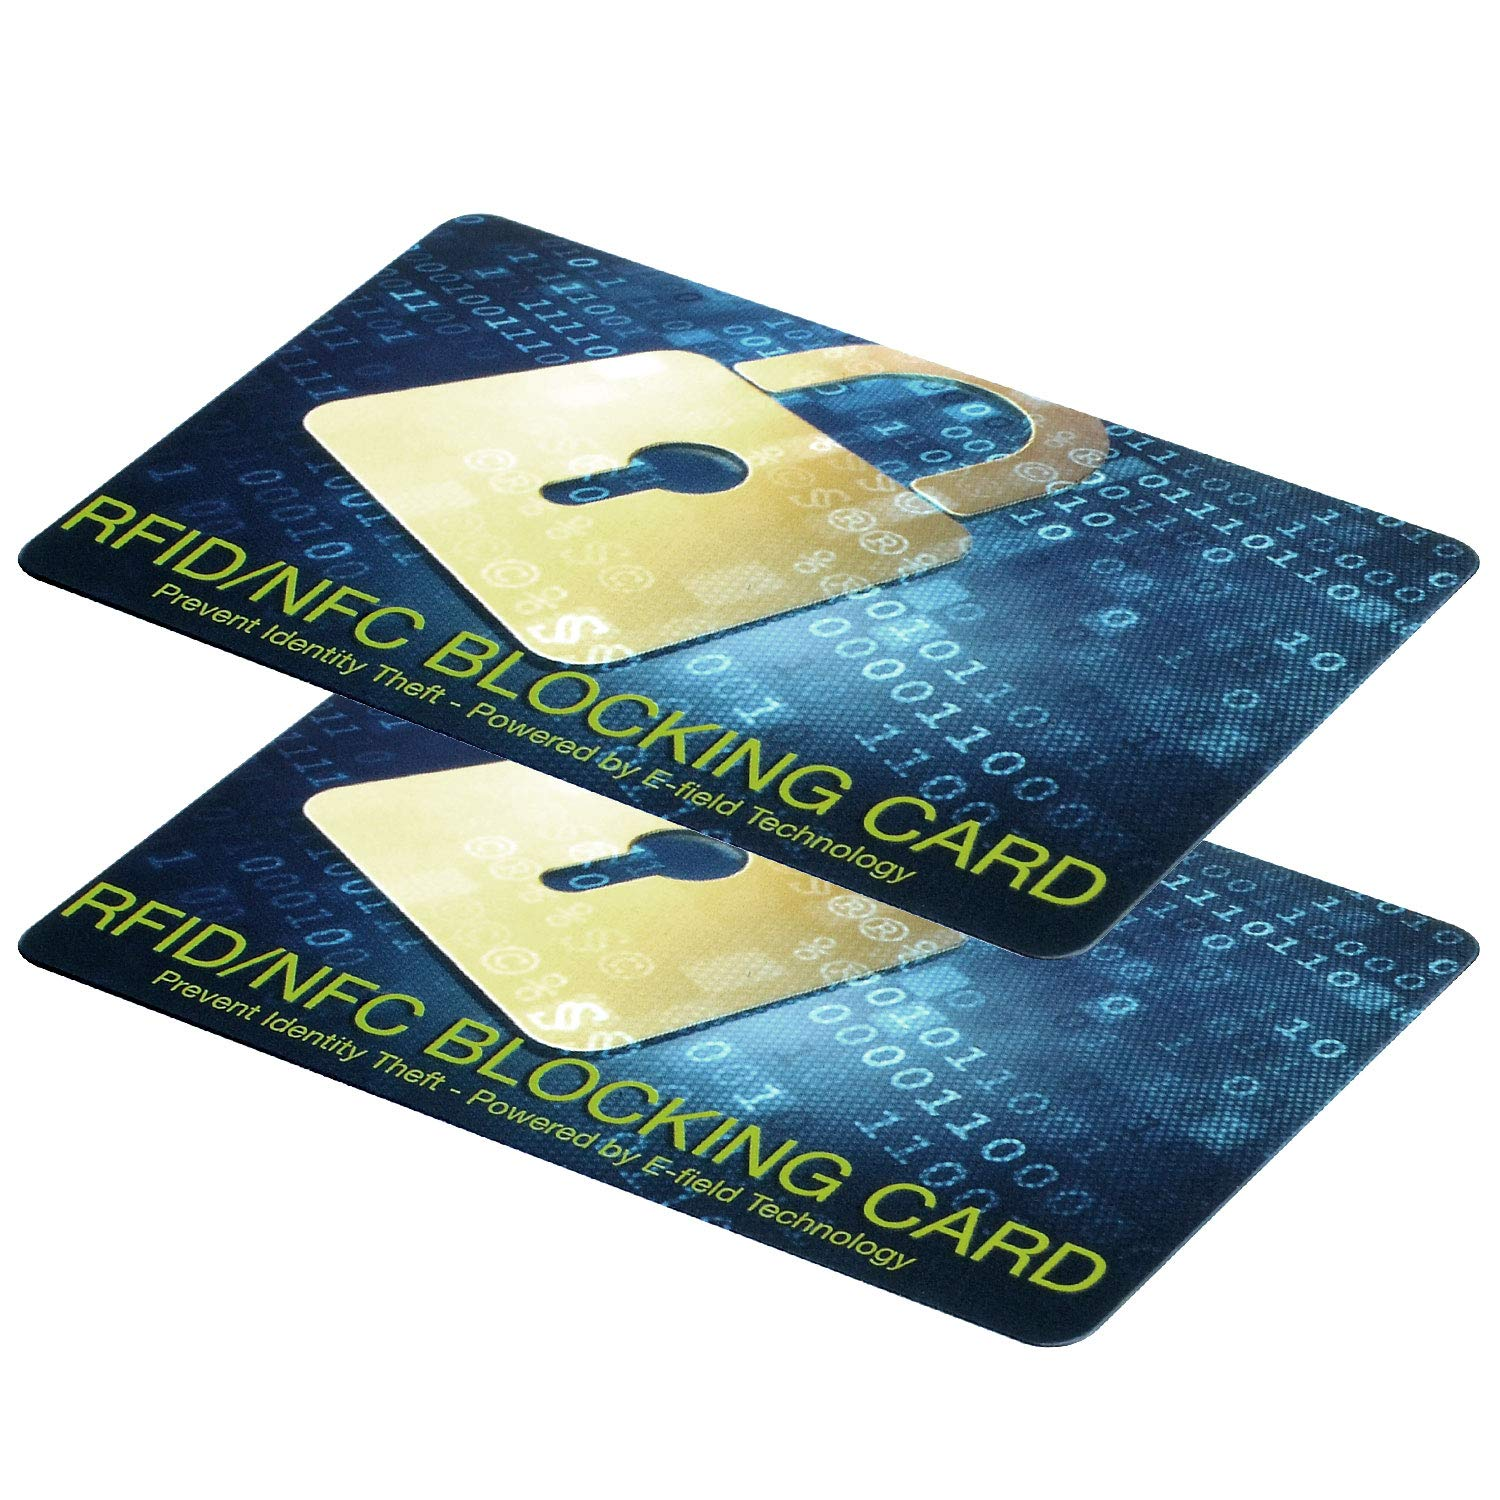 RFID Blocking Card-NFC Contactless Cards Protection for ID's, Passports and Chip Bank Cards-Theft Blocking Wallet Protector,Waterproof,Slim Design -1 Card Protects Your Entire Wallet-2 Packs by Azone